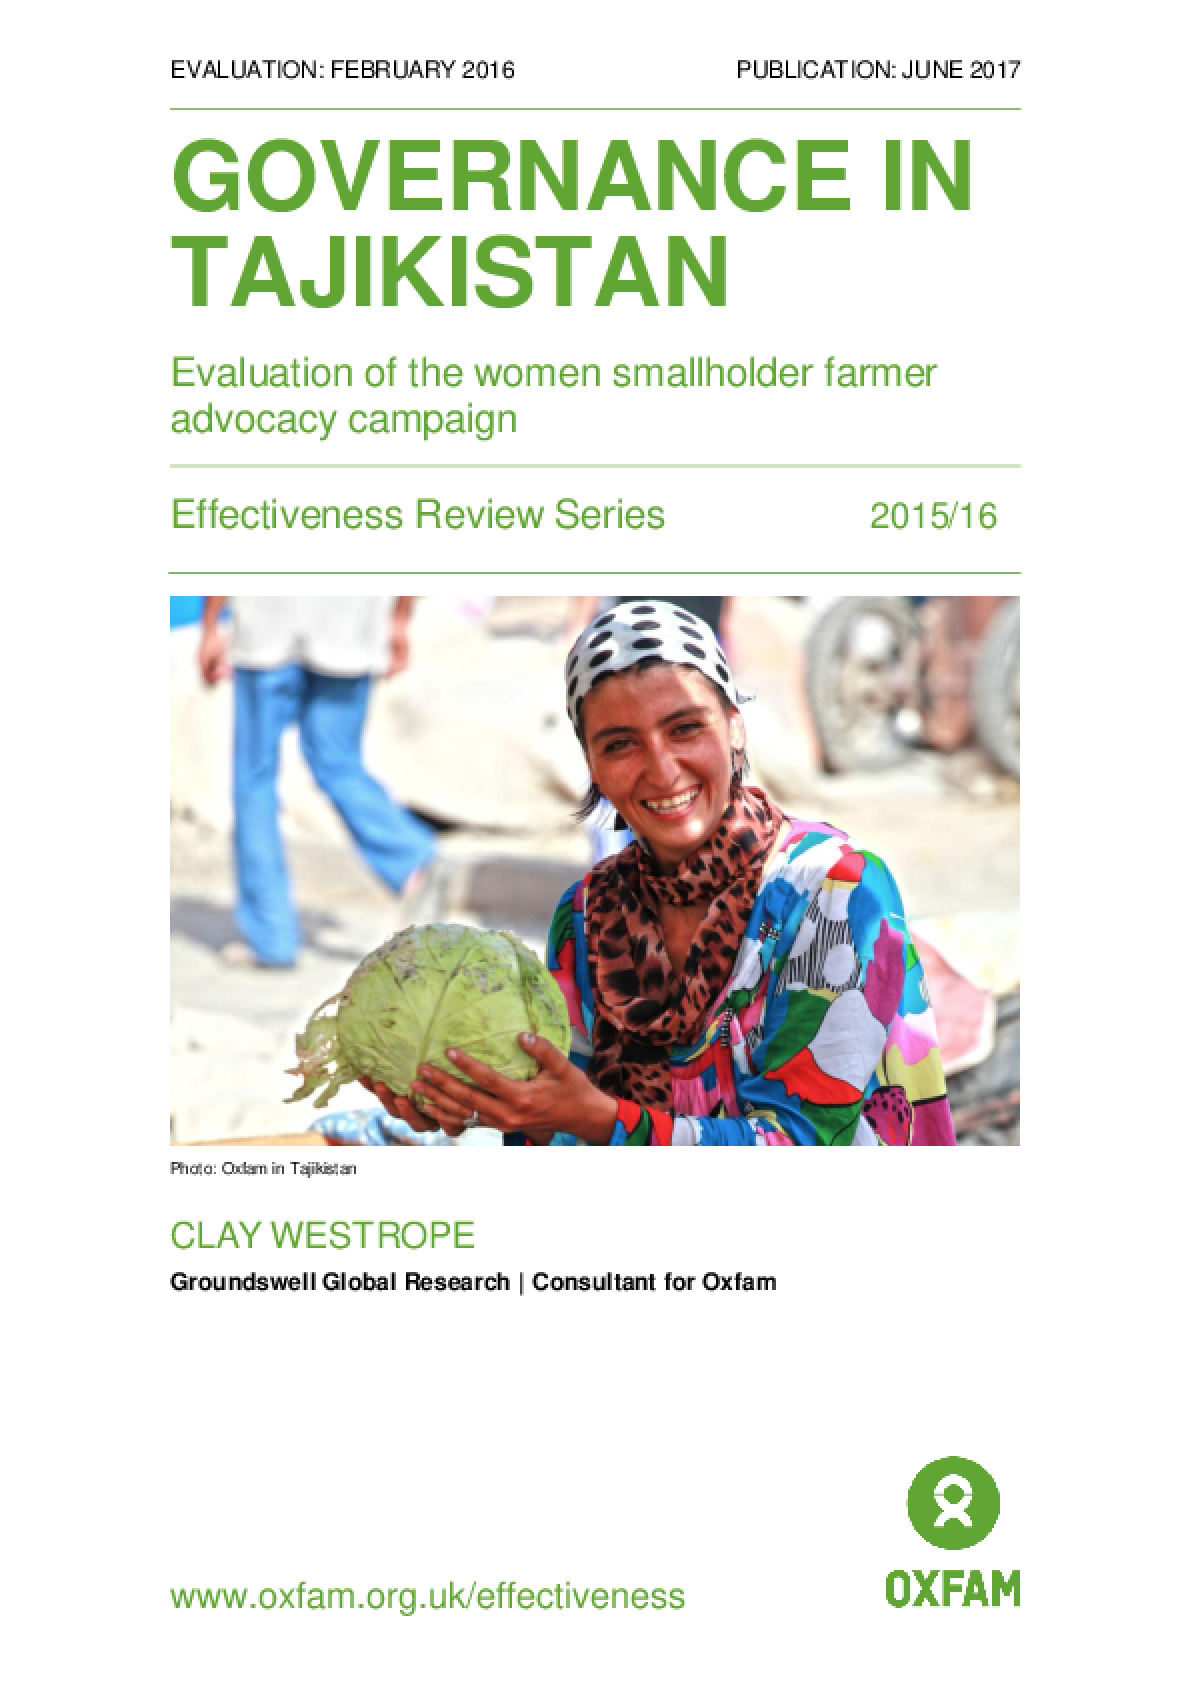 Governance in Tajikistan: Evaluation of the women smallholder farmer advocacy campaign